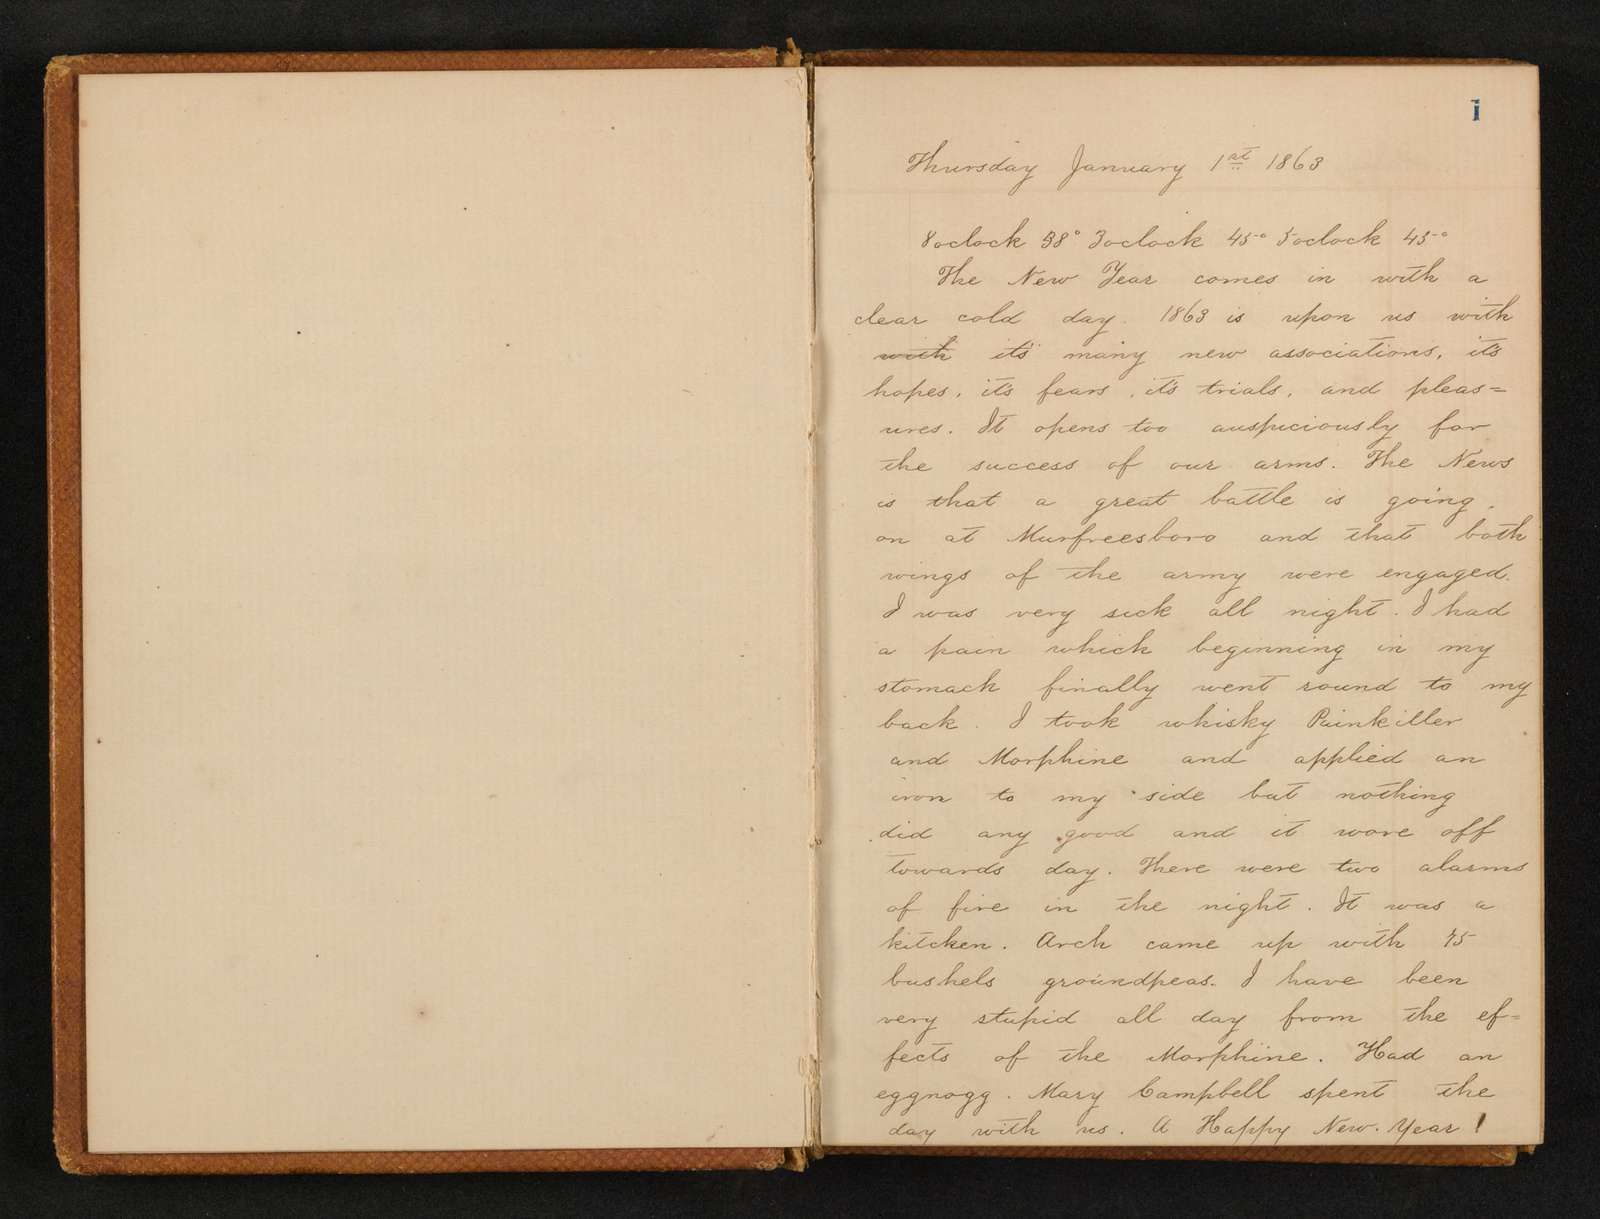 Lewis H. Machen Family Papers: Diaries and Diary Transcriptions, 1860-1865; Diaries; Gresham, LeRoy Wiley; 1863, 1 Jan.-1864, 30 Apr